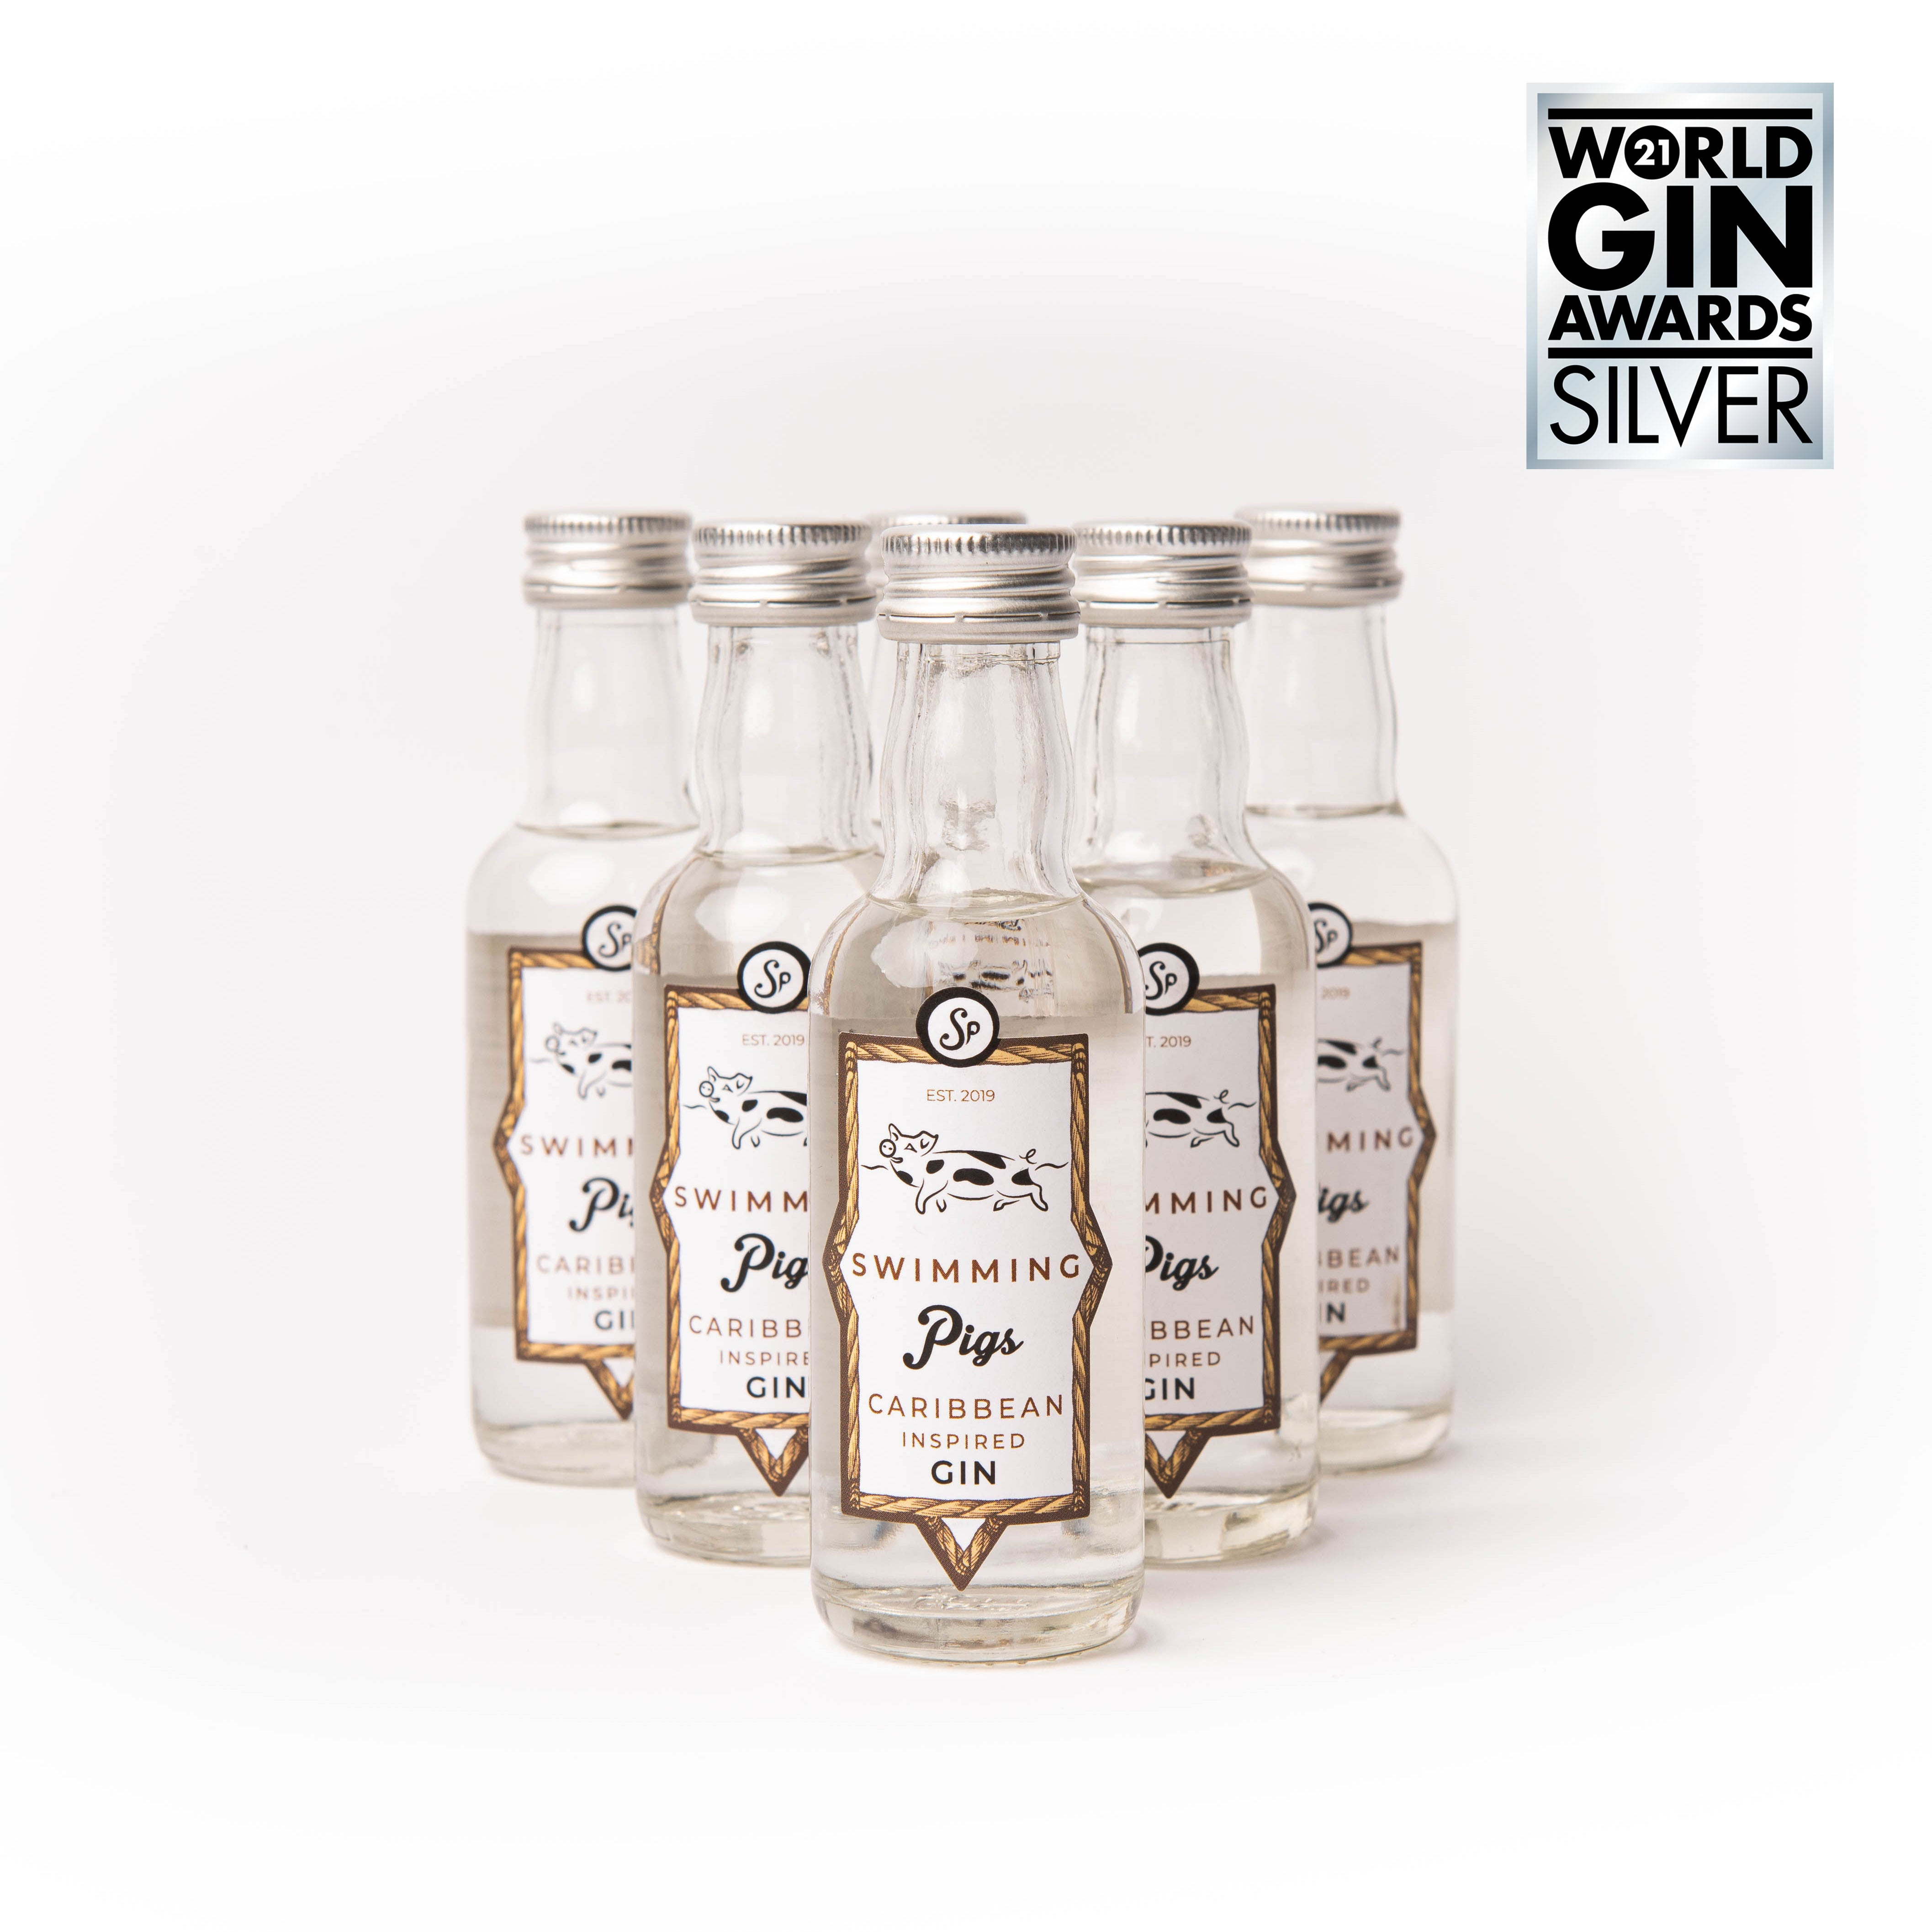 Swimming Pigs Caribbean Gin 5cl (x6)